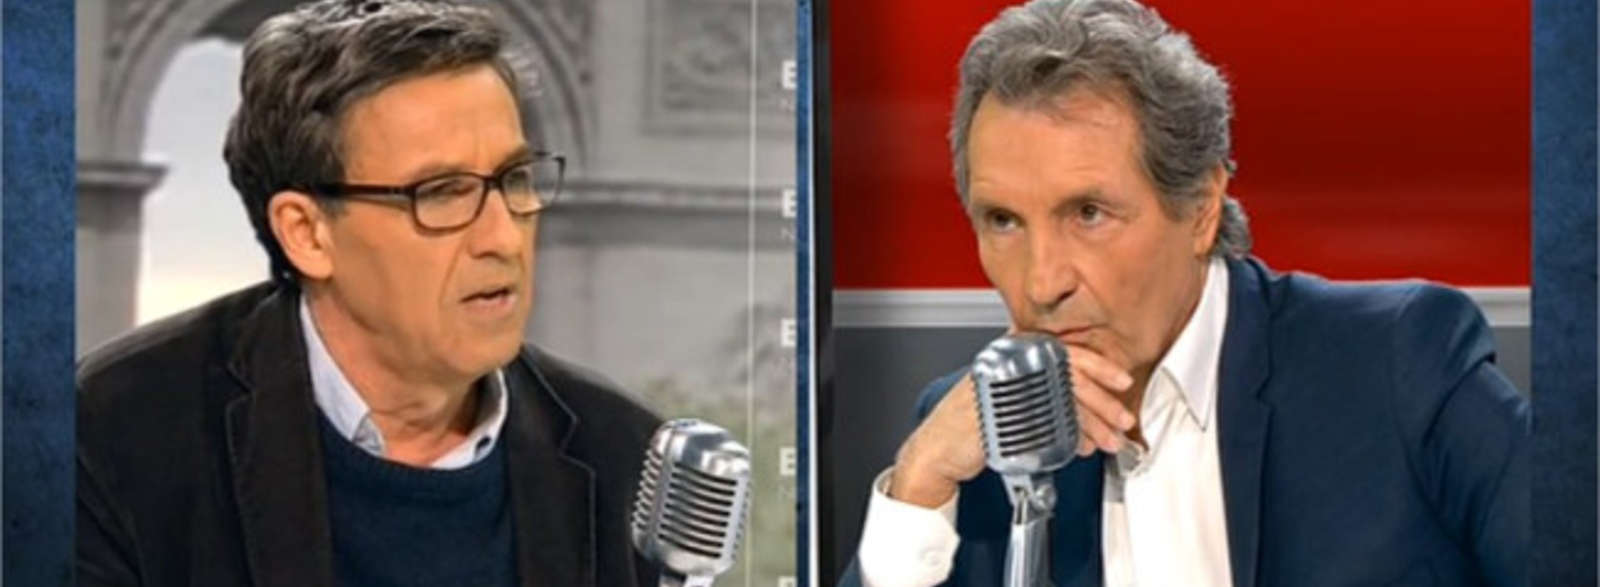 Bourdin Direct : Emmanuel Todd envoie Valls et Hollande au tapis